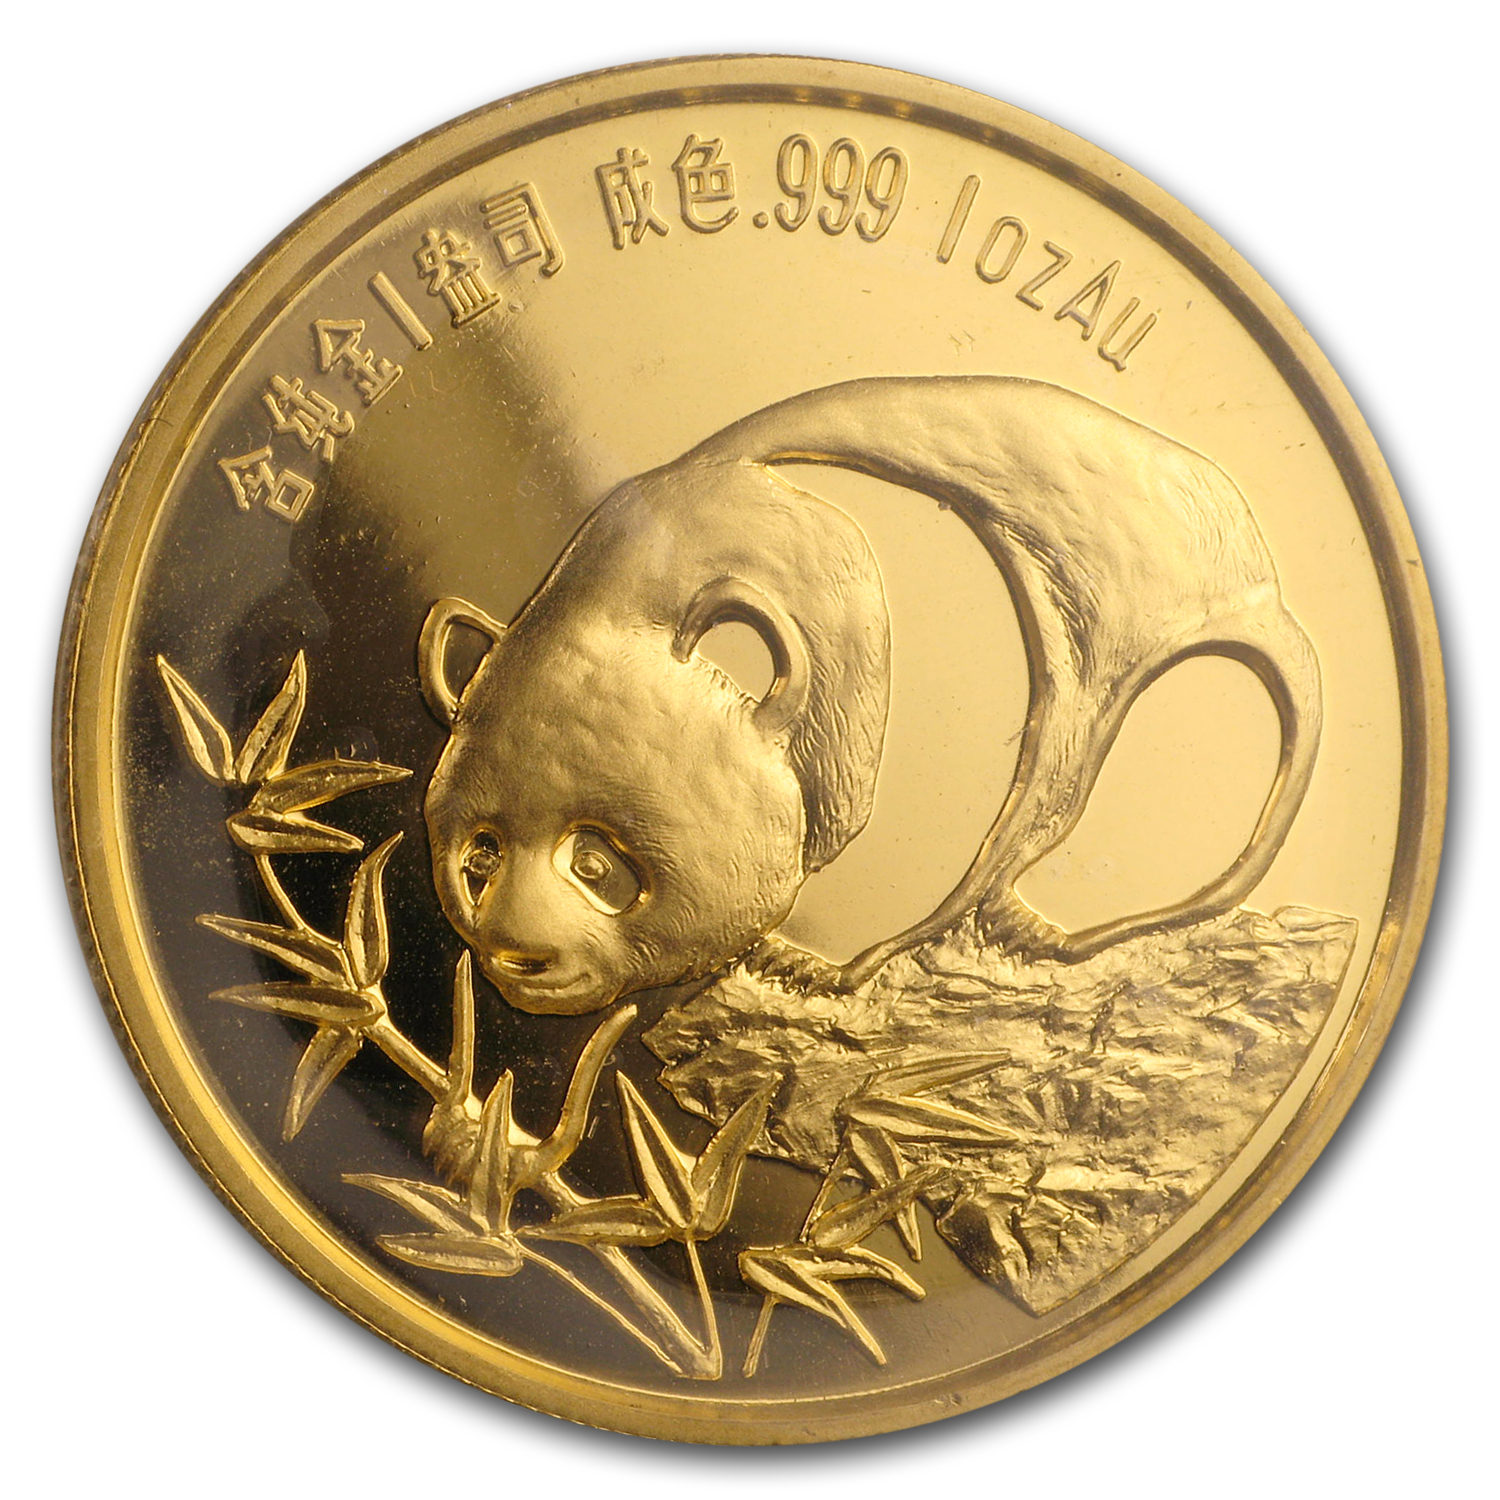 1987 1 oz Proof Gold Chinese Panda (New Orleans Sino Friendship)